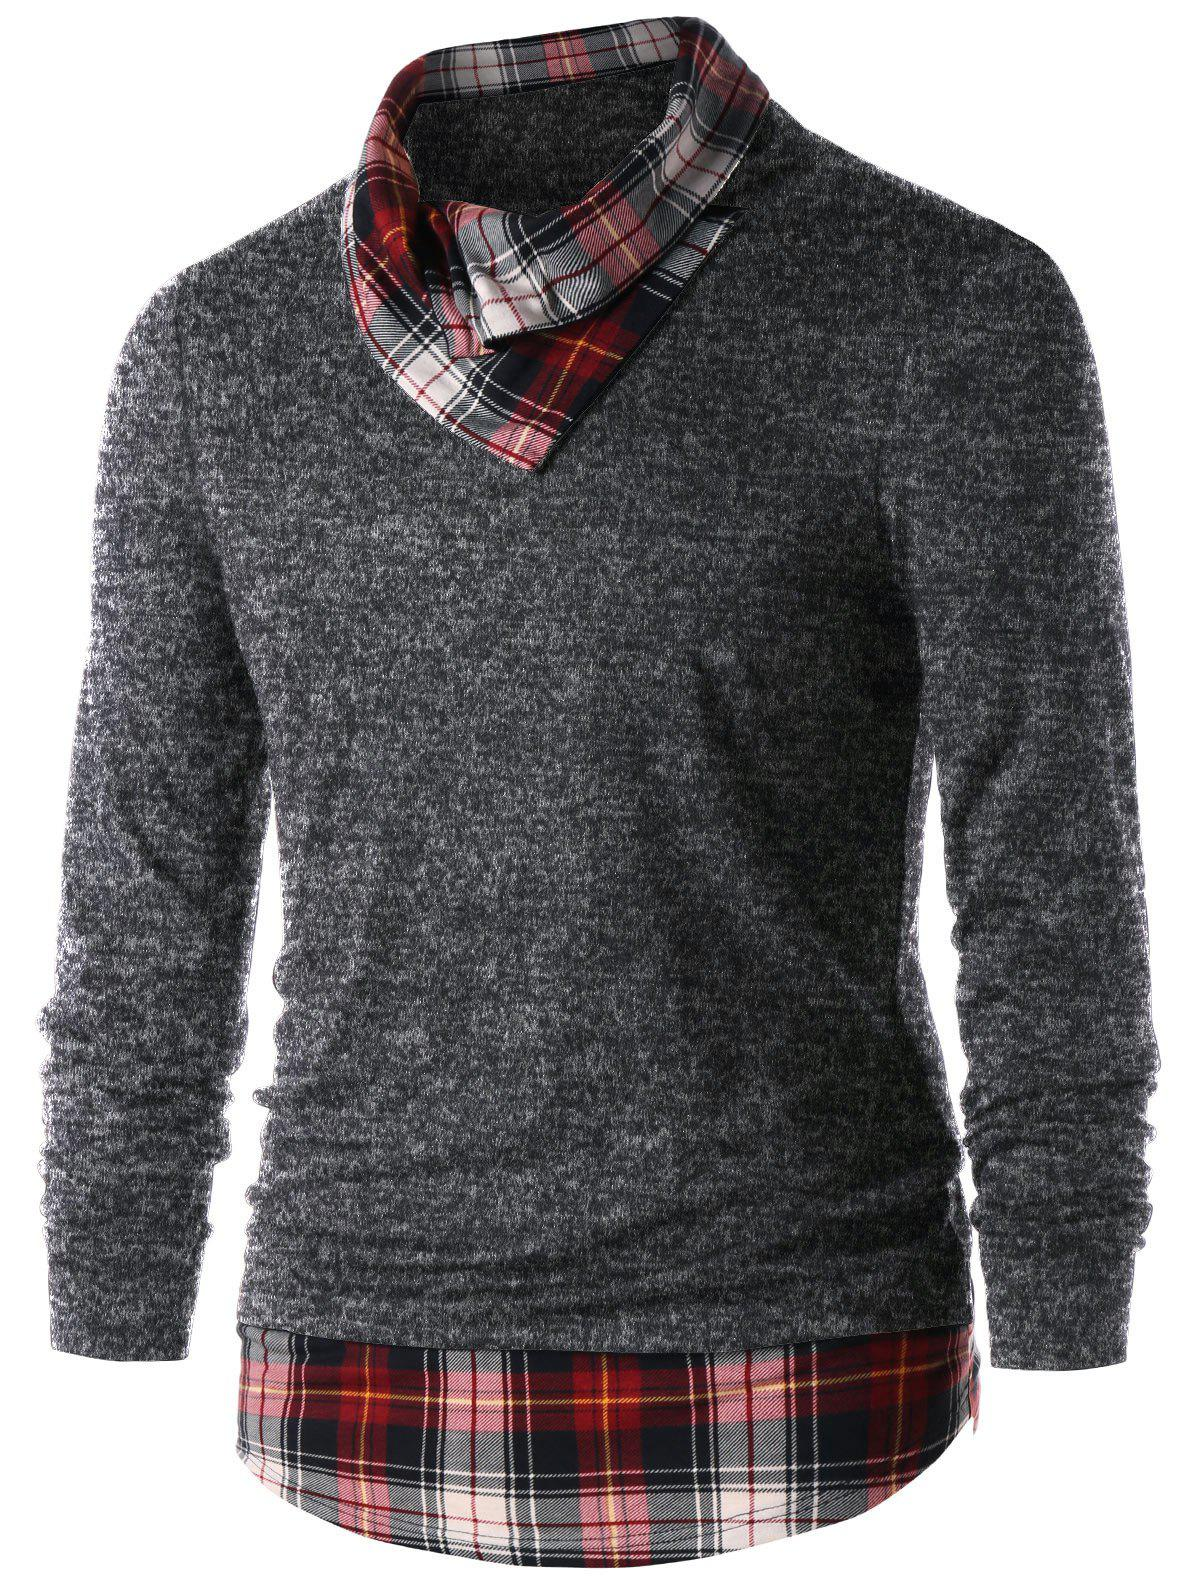 Heaps Collar Plaid Trim Top - DARK GRAY L